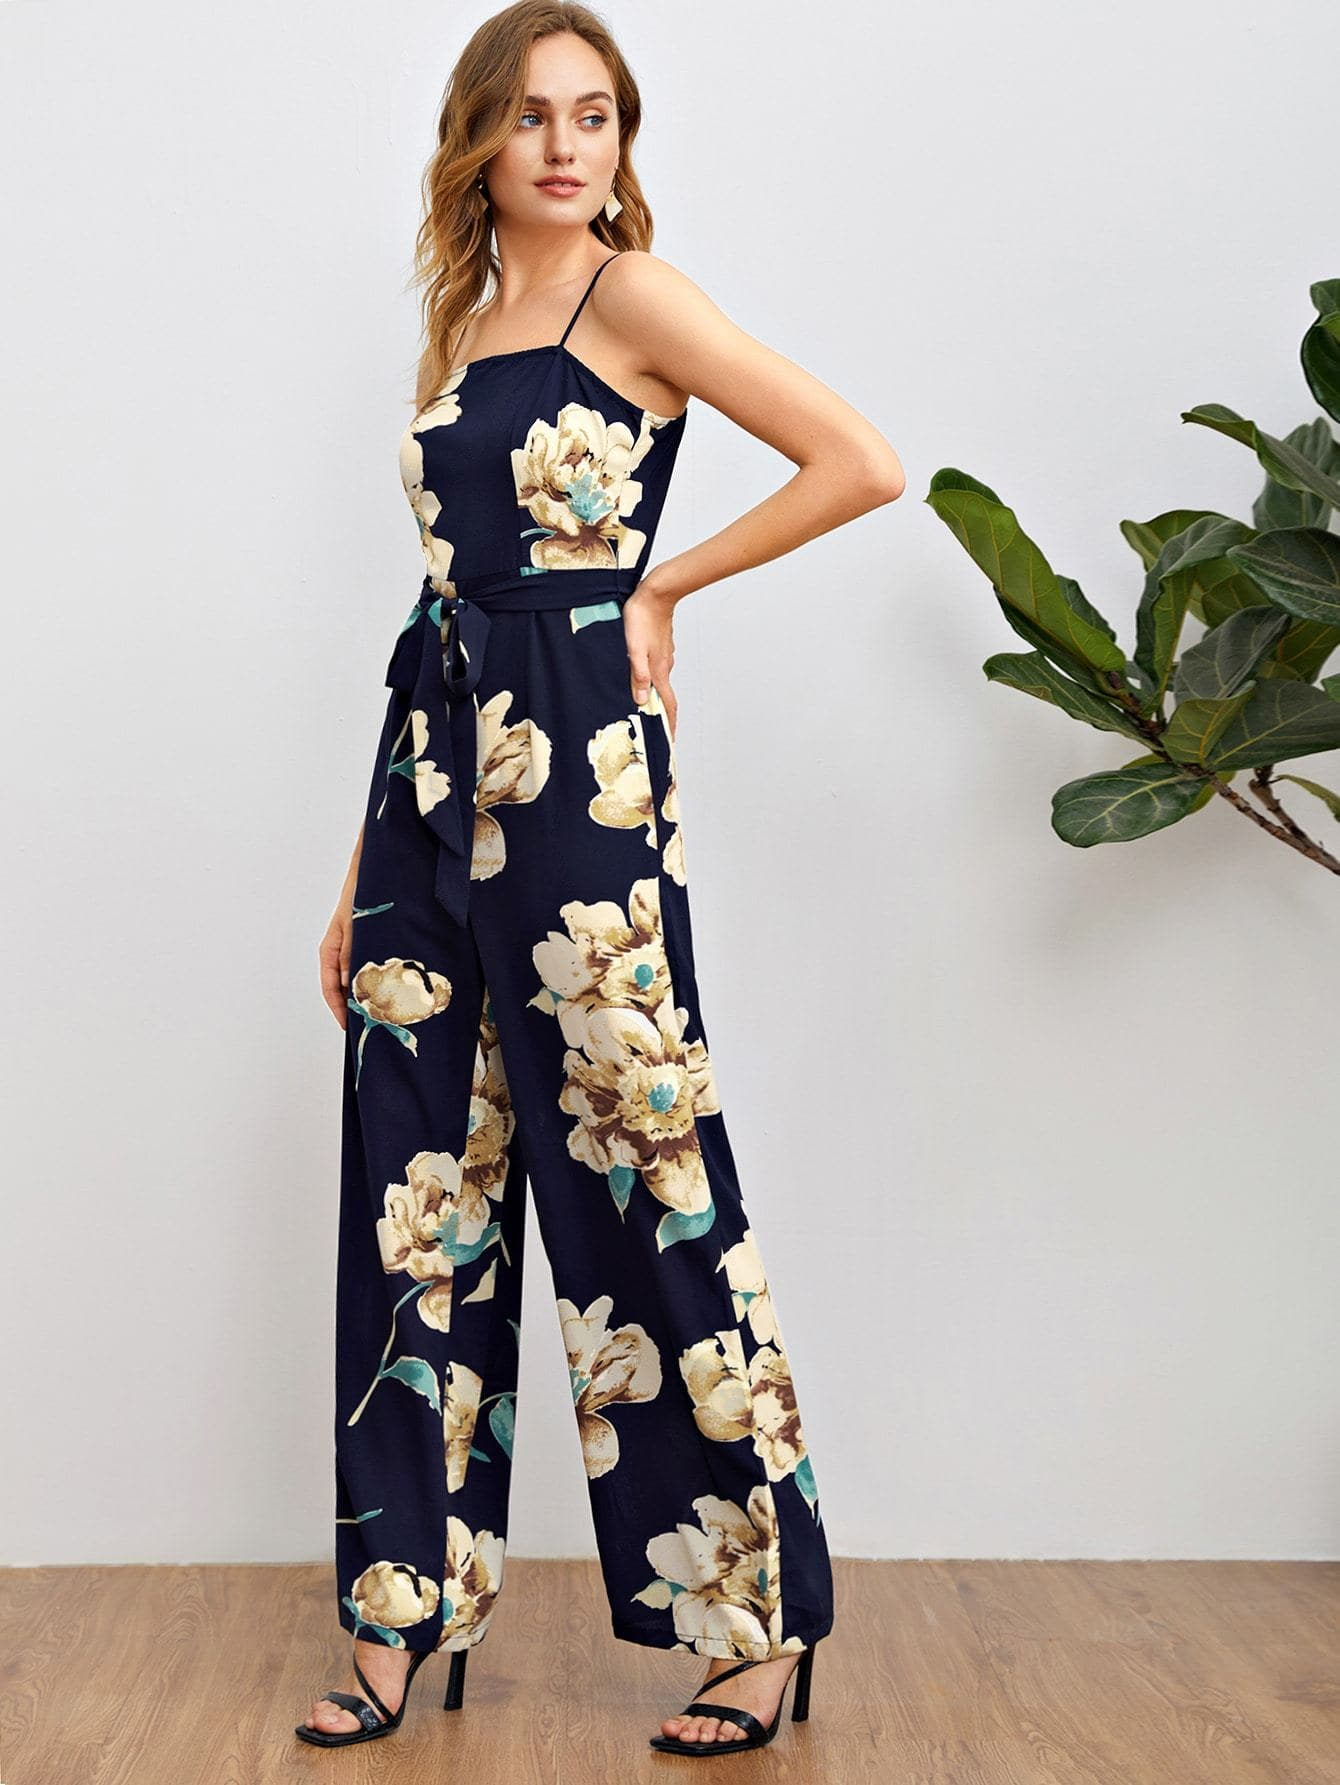 Floral Print Wide Leg Self Belted Cami Jumpsuit - FLJ CORPORATIONS